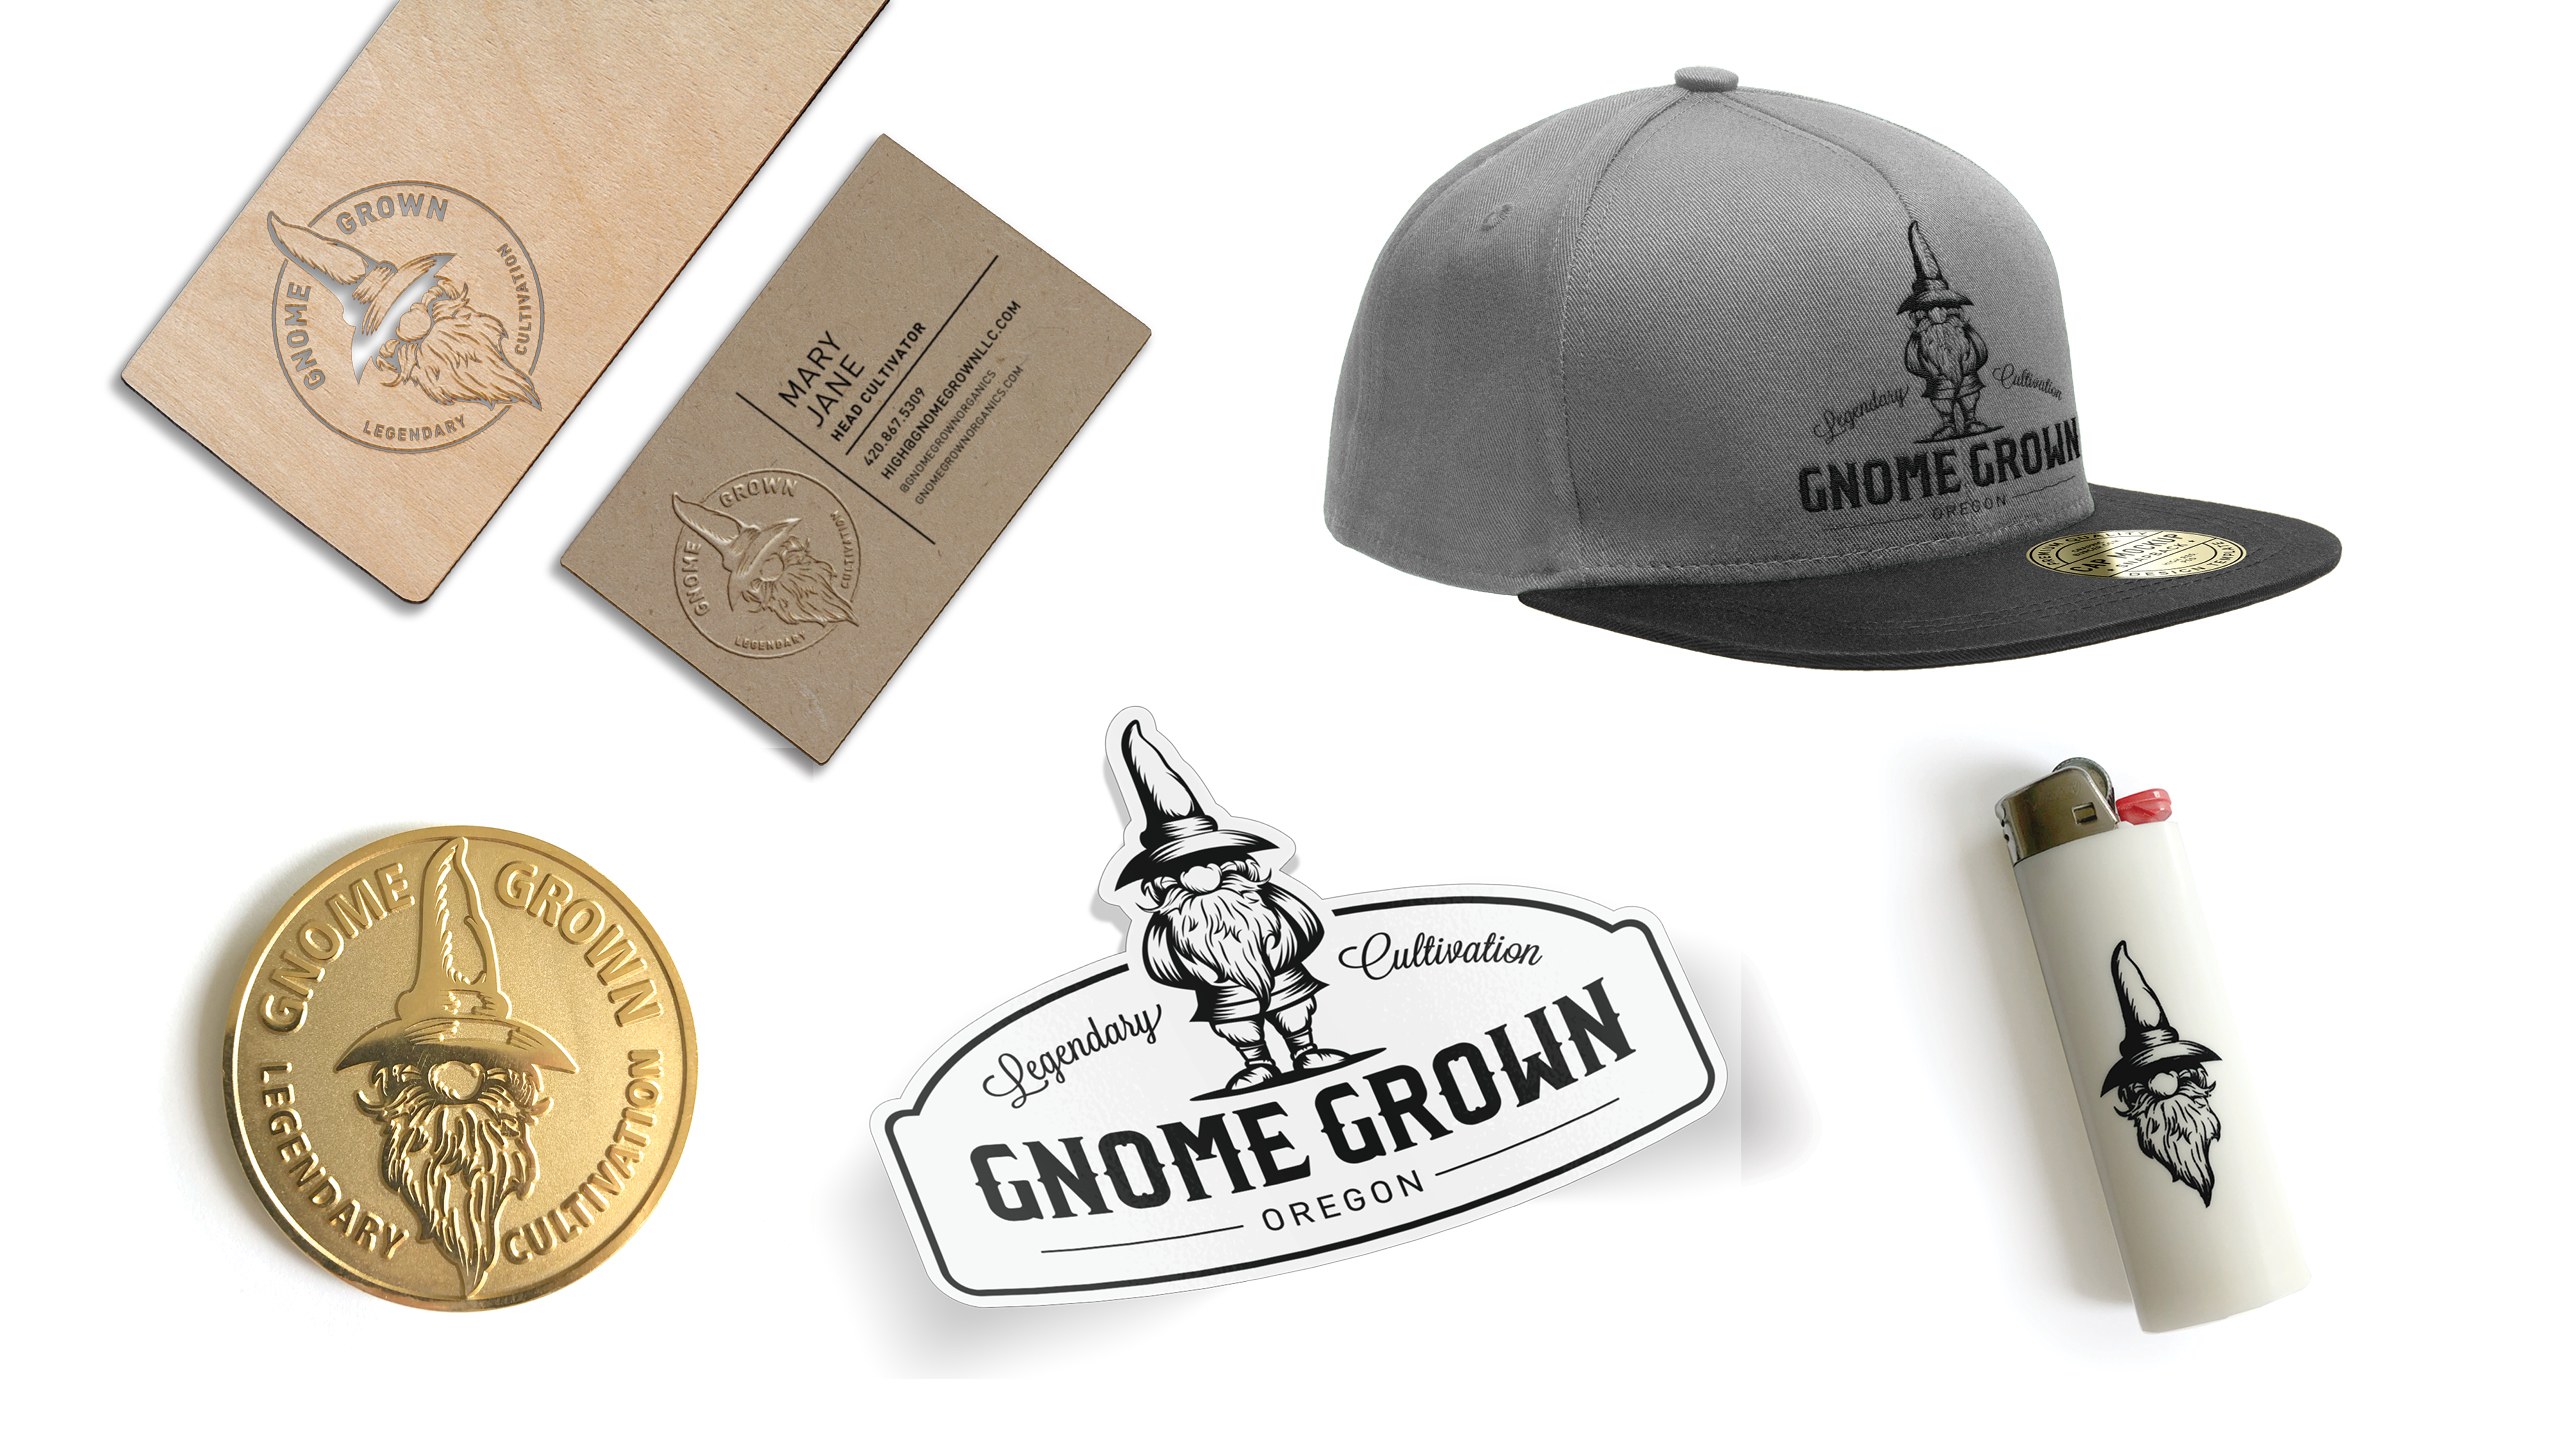 Gnome Grown Custom Apparel & Branded Collateral by High Road Design Studio